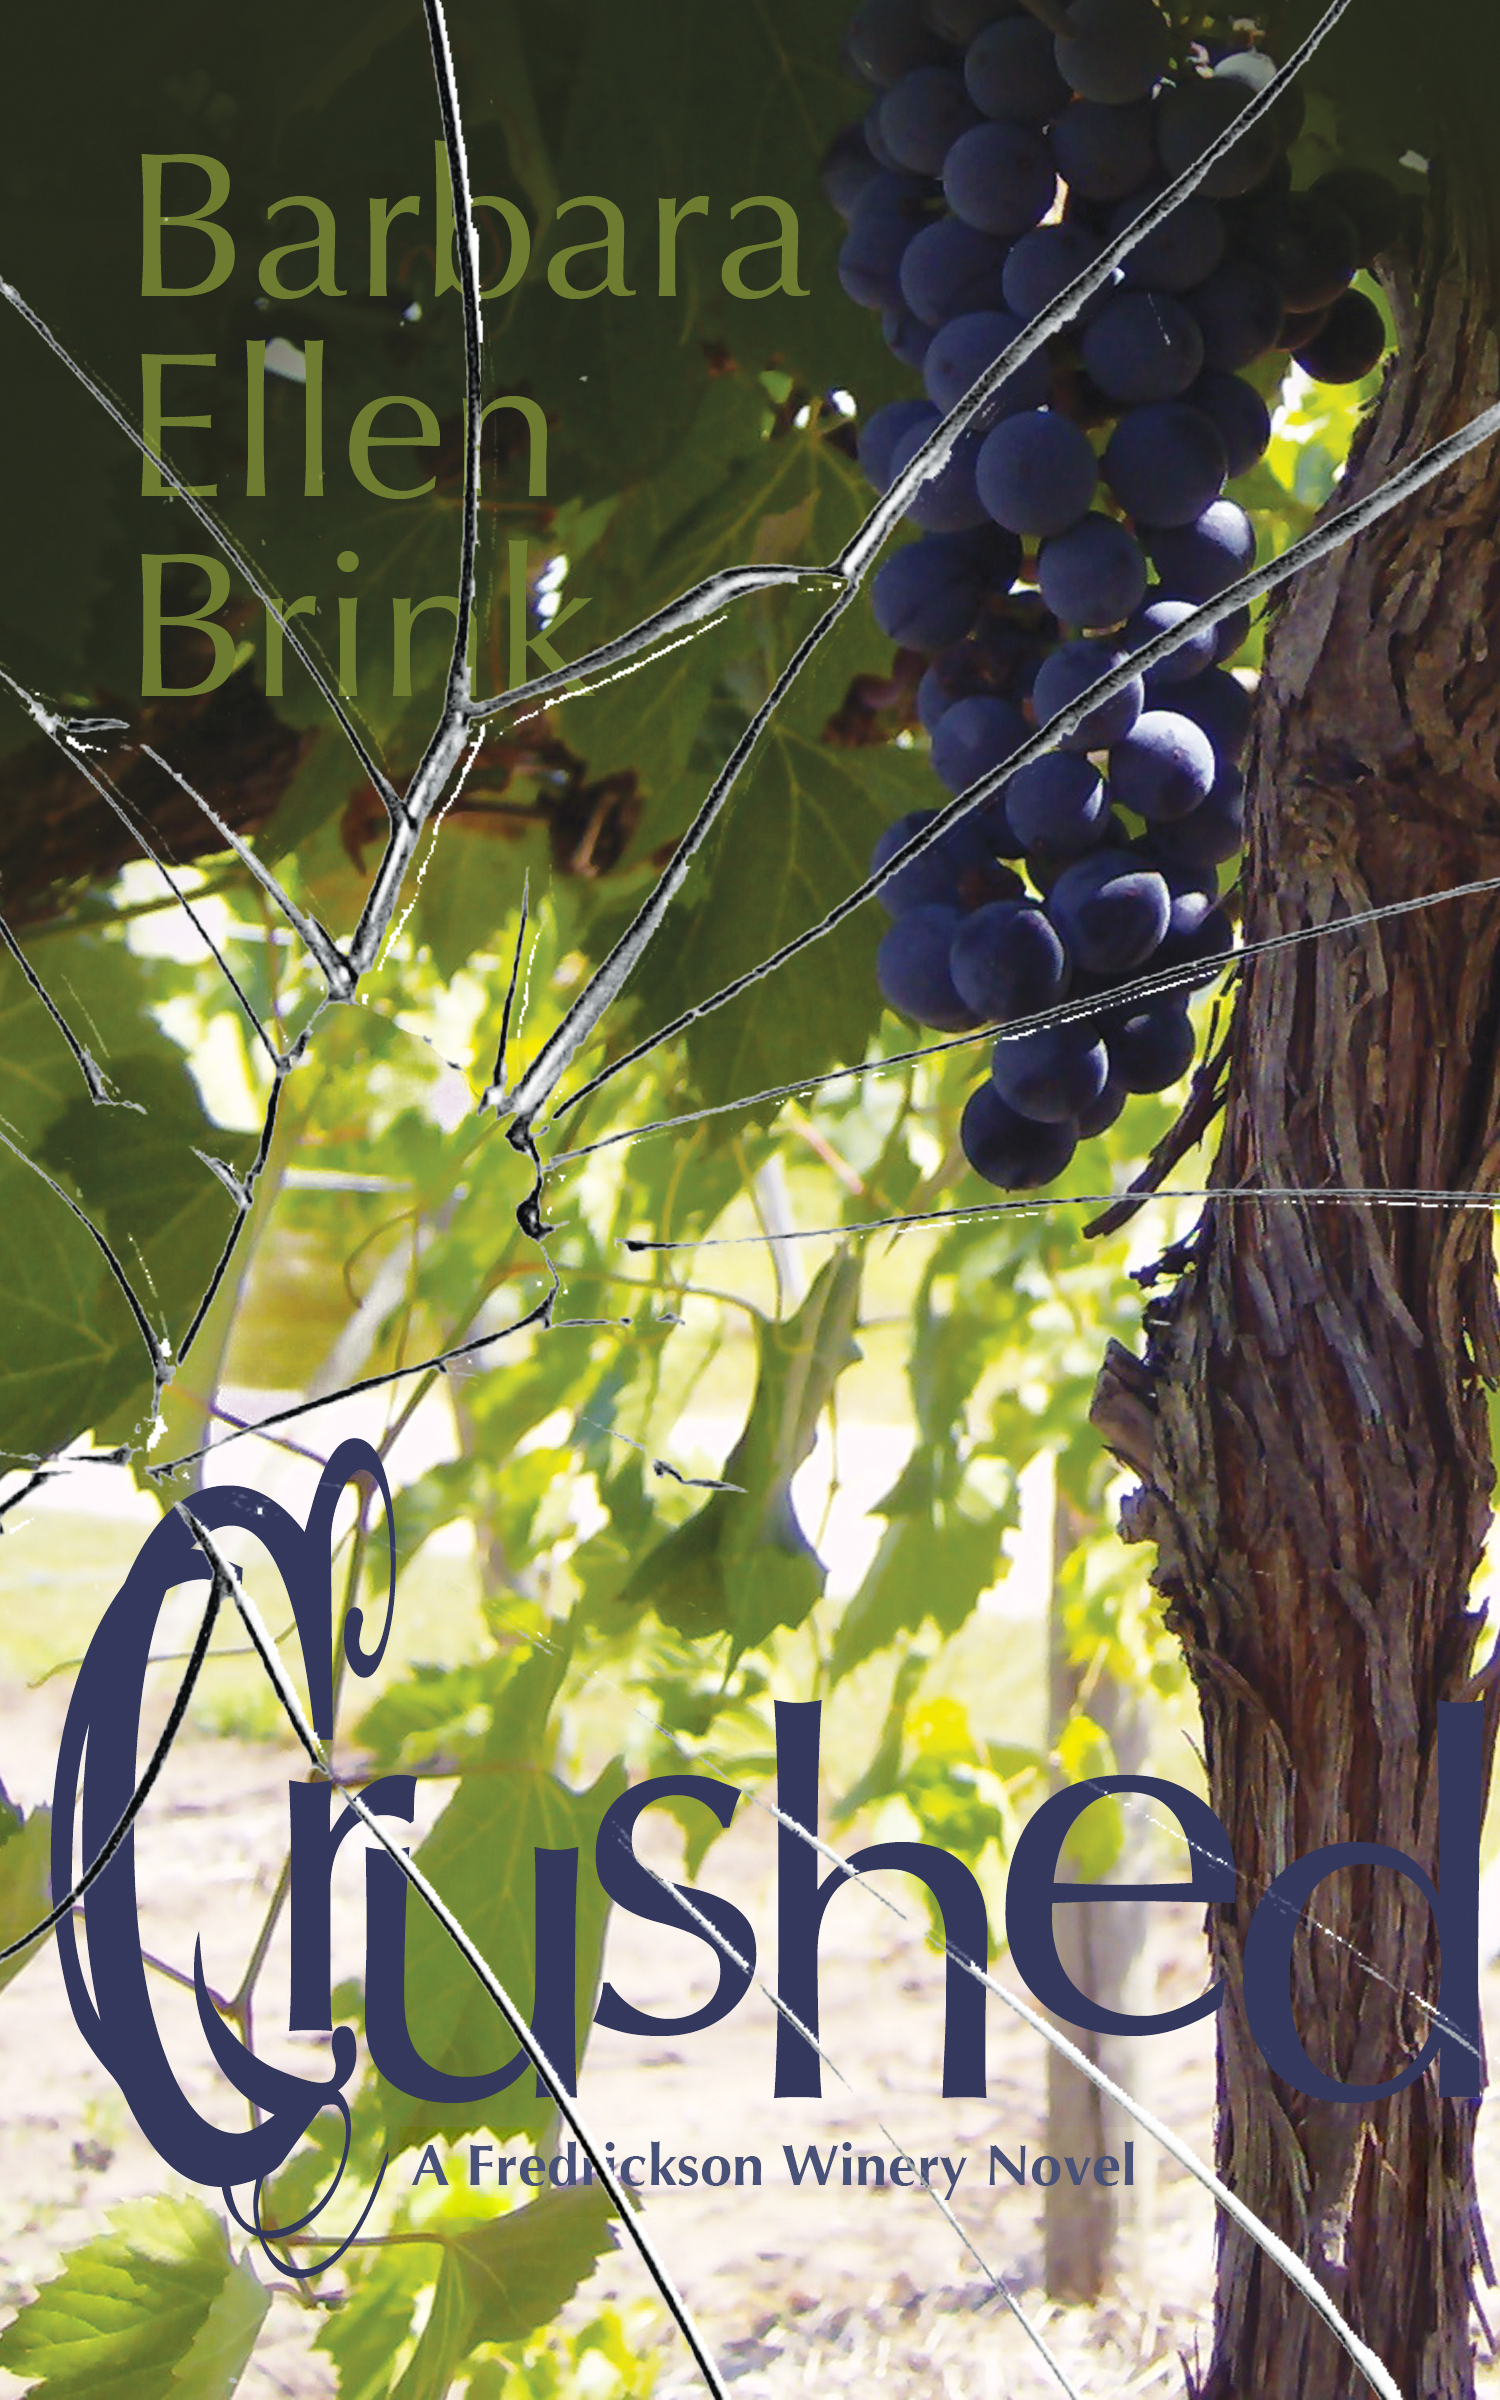 Crushed (The Fredrickson Winery Novels Book 2)